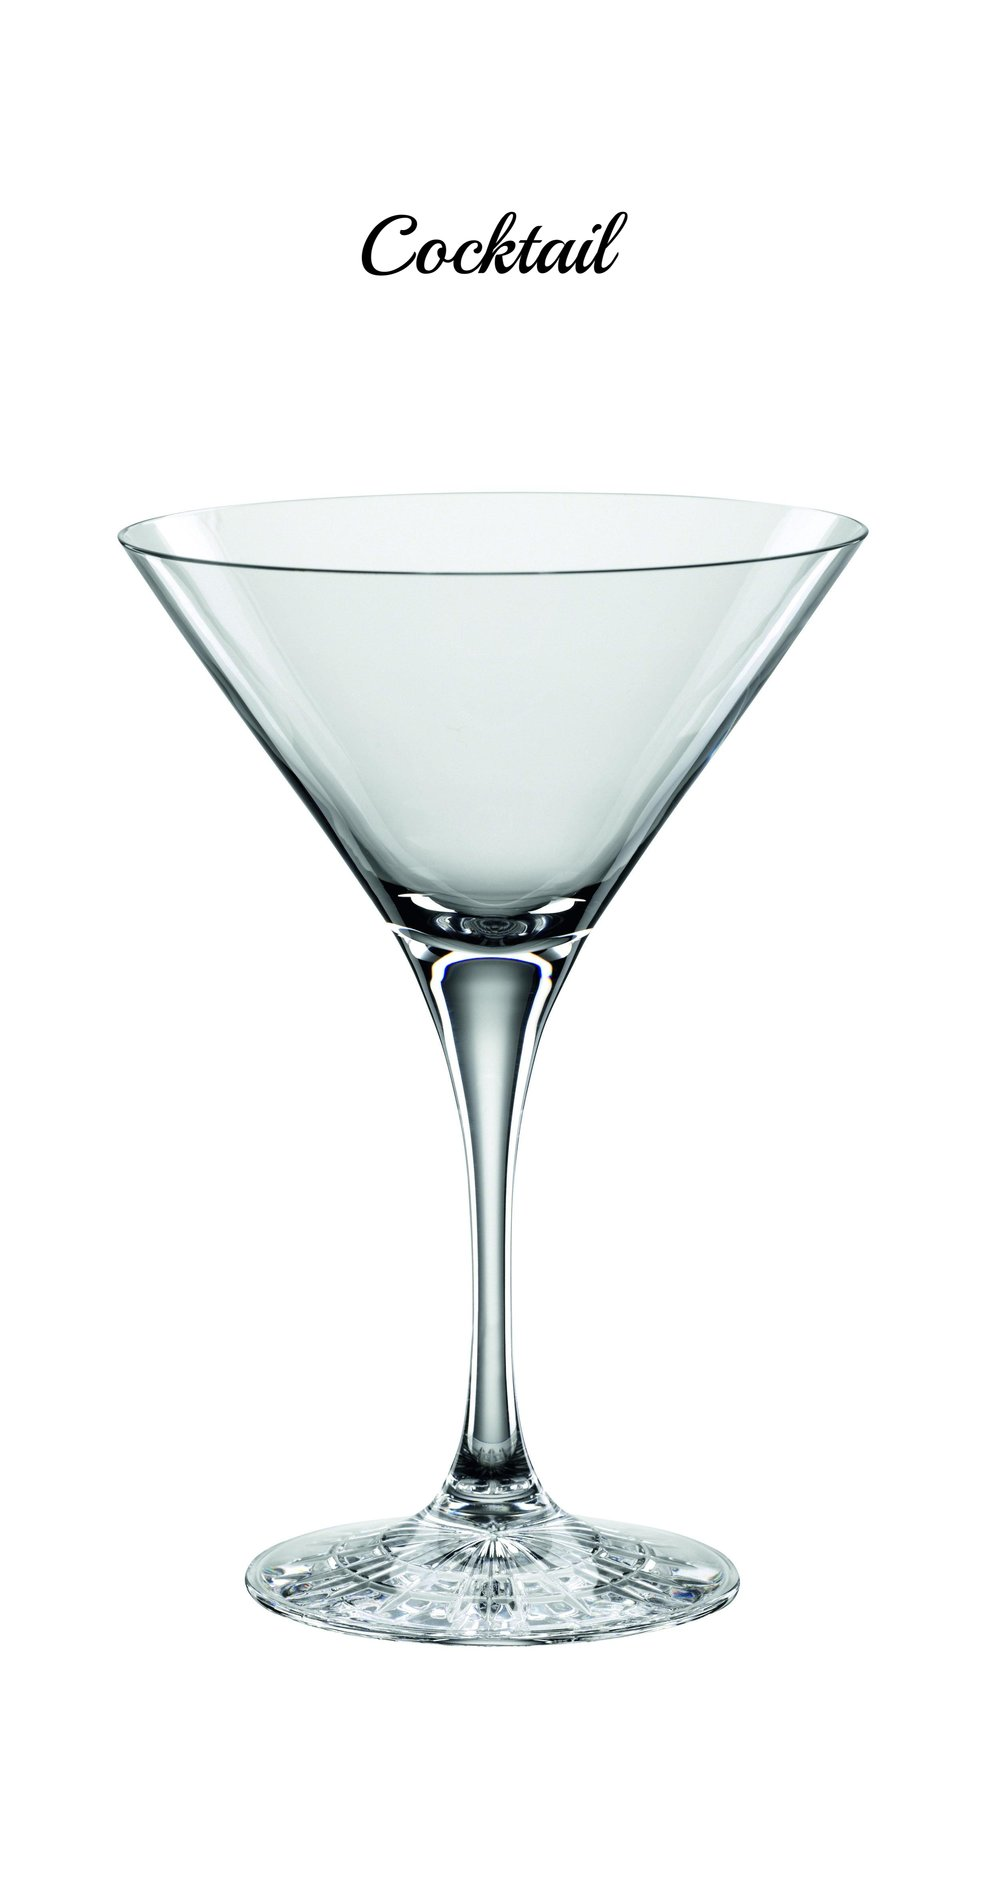 4508033_Large Cocktail Glass.jpg